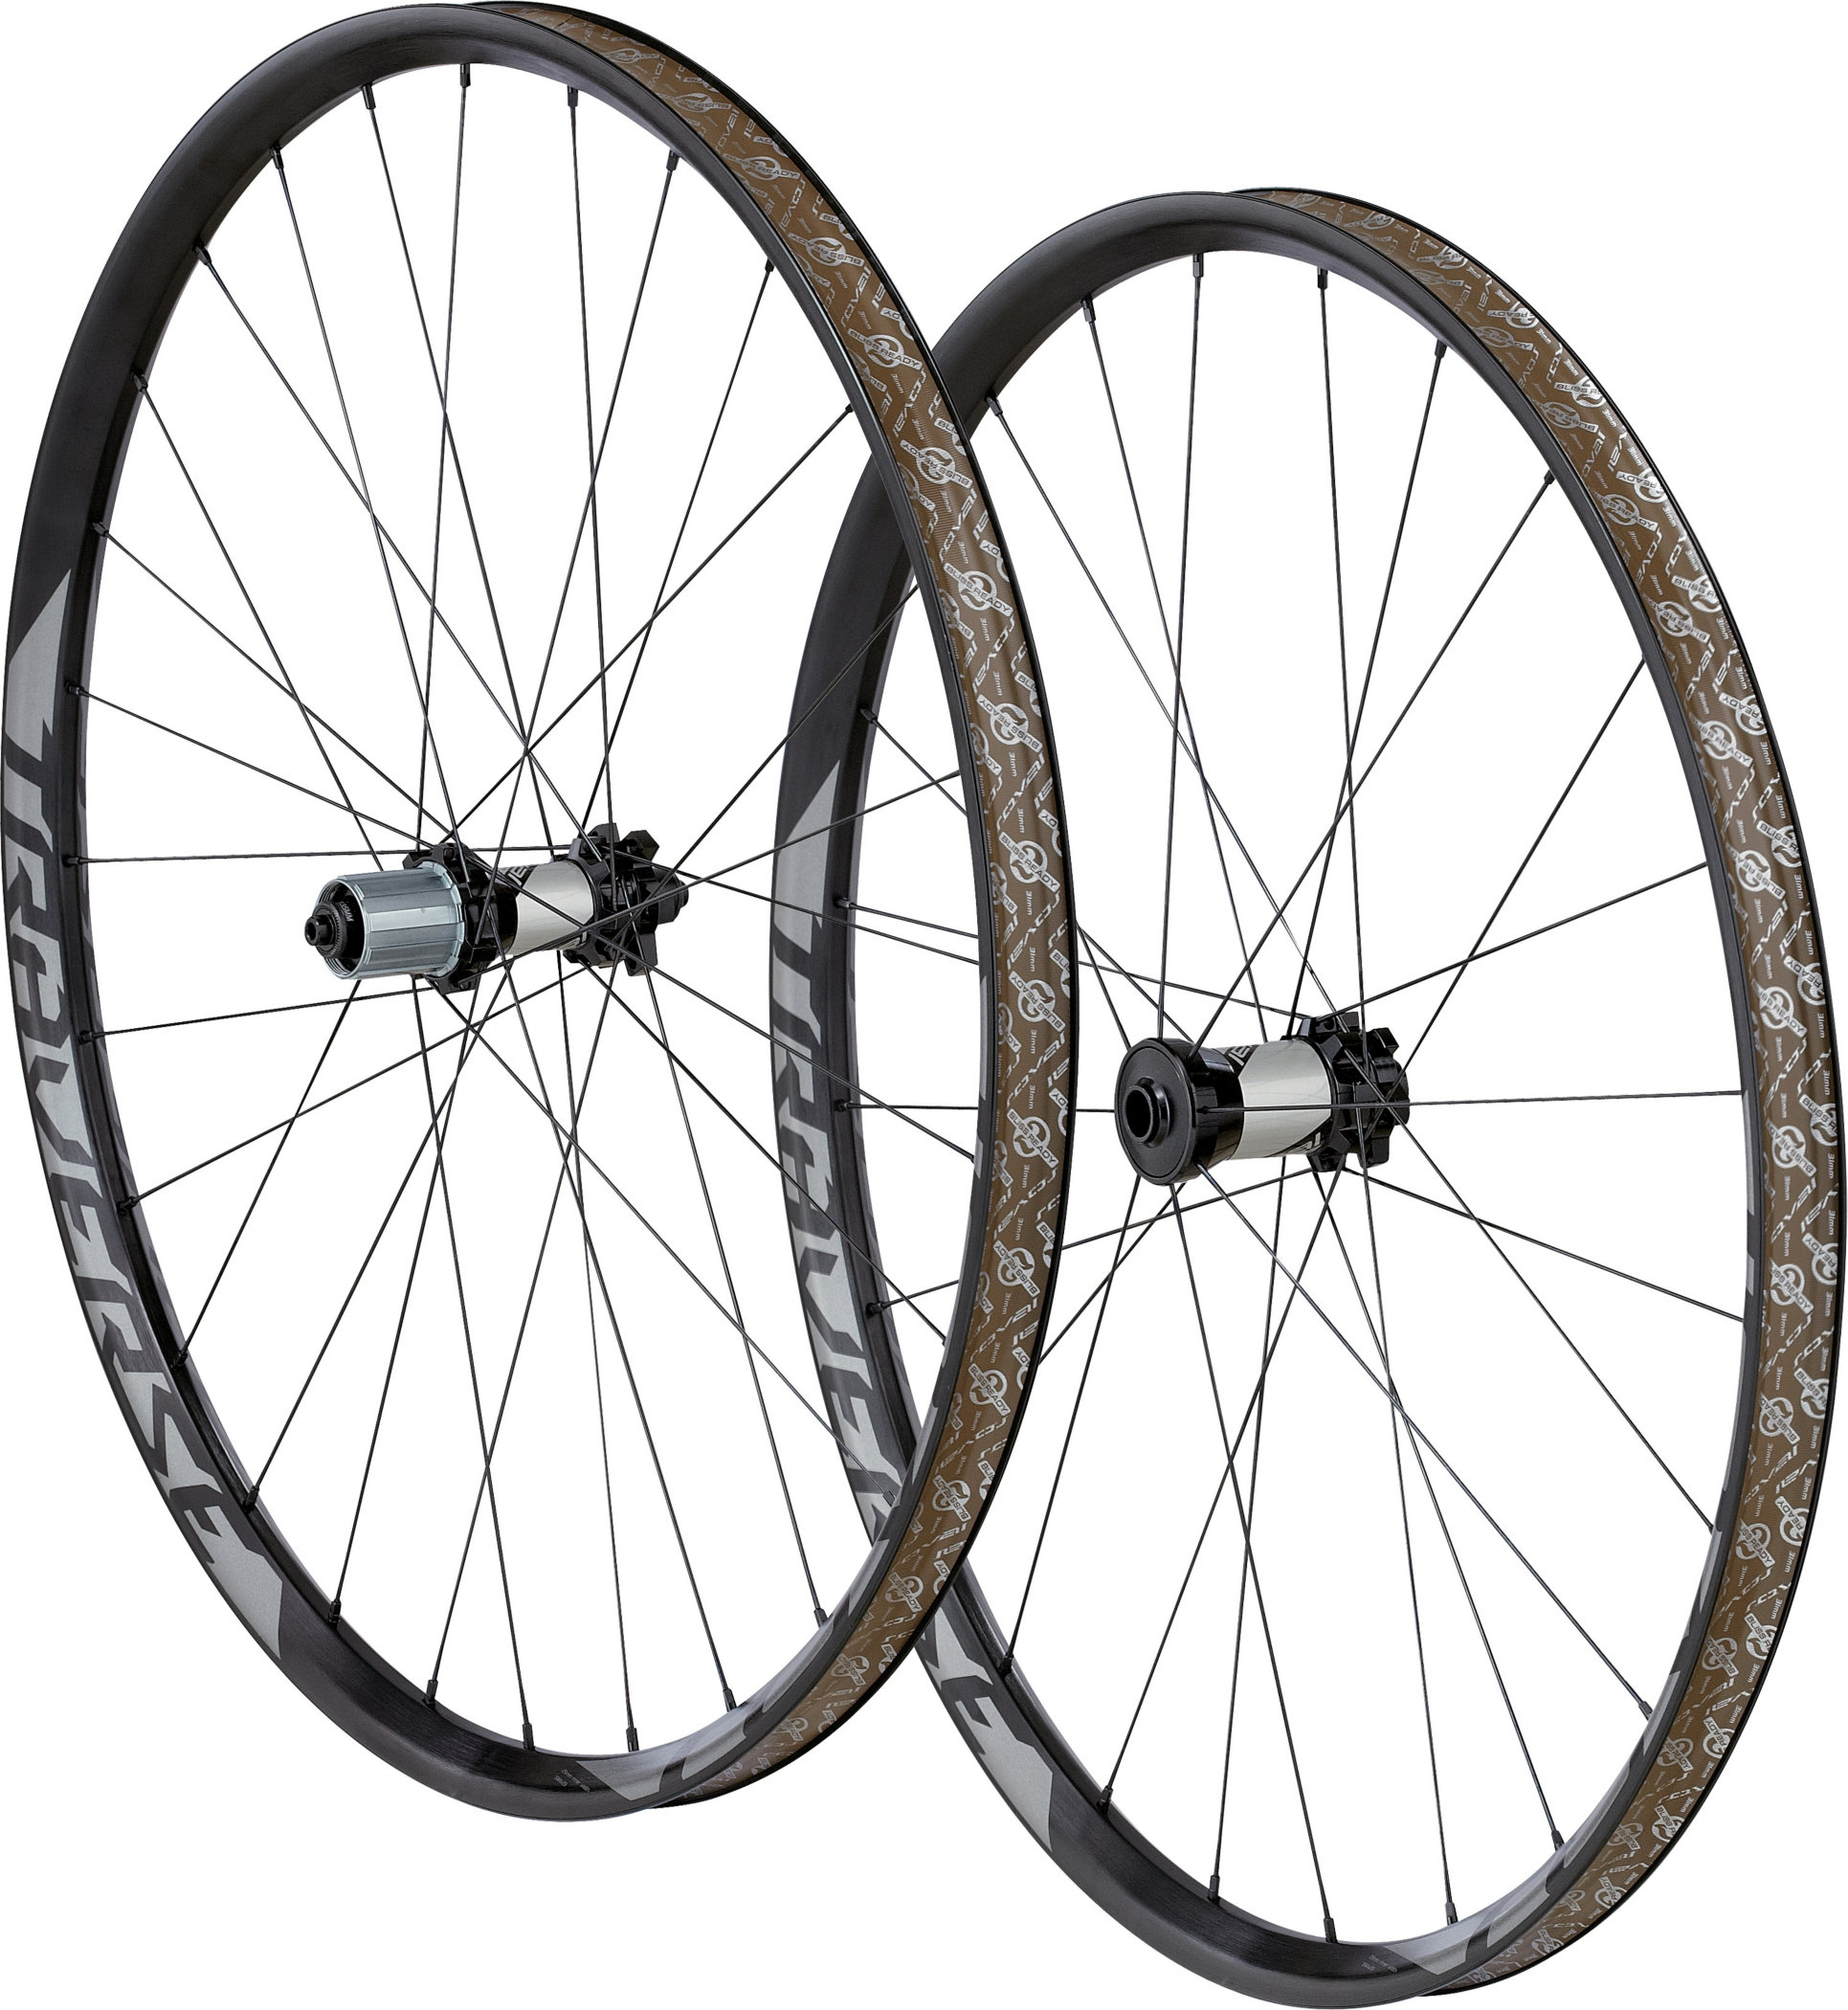 SPECIALIZED TRAVERSE 650B WHEELSET CHAR - Bike Zone